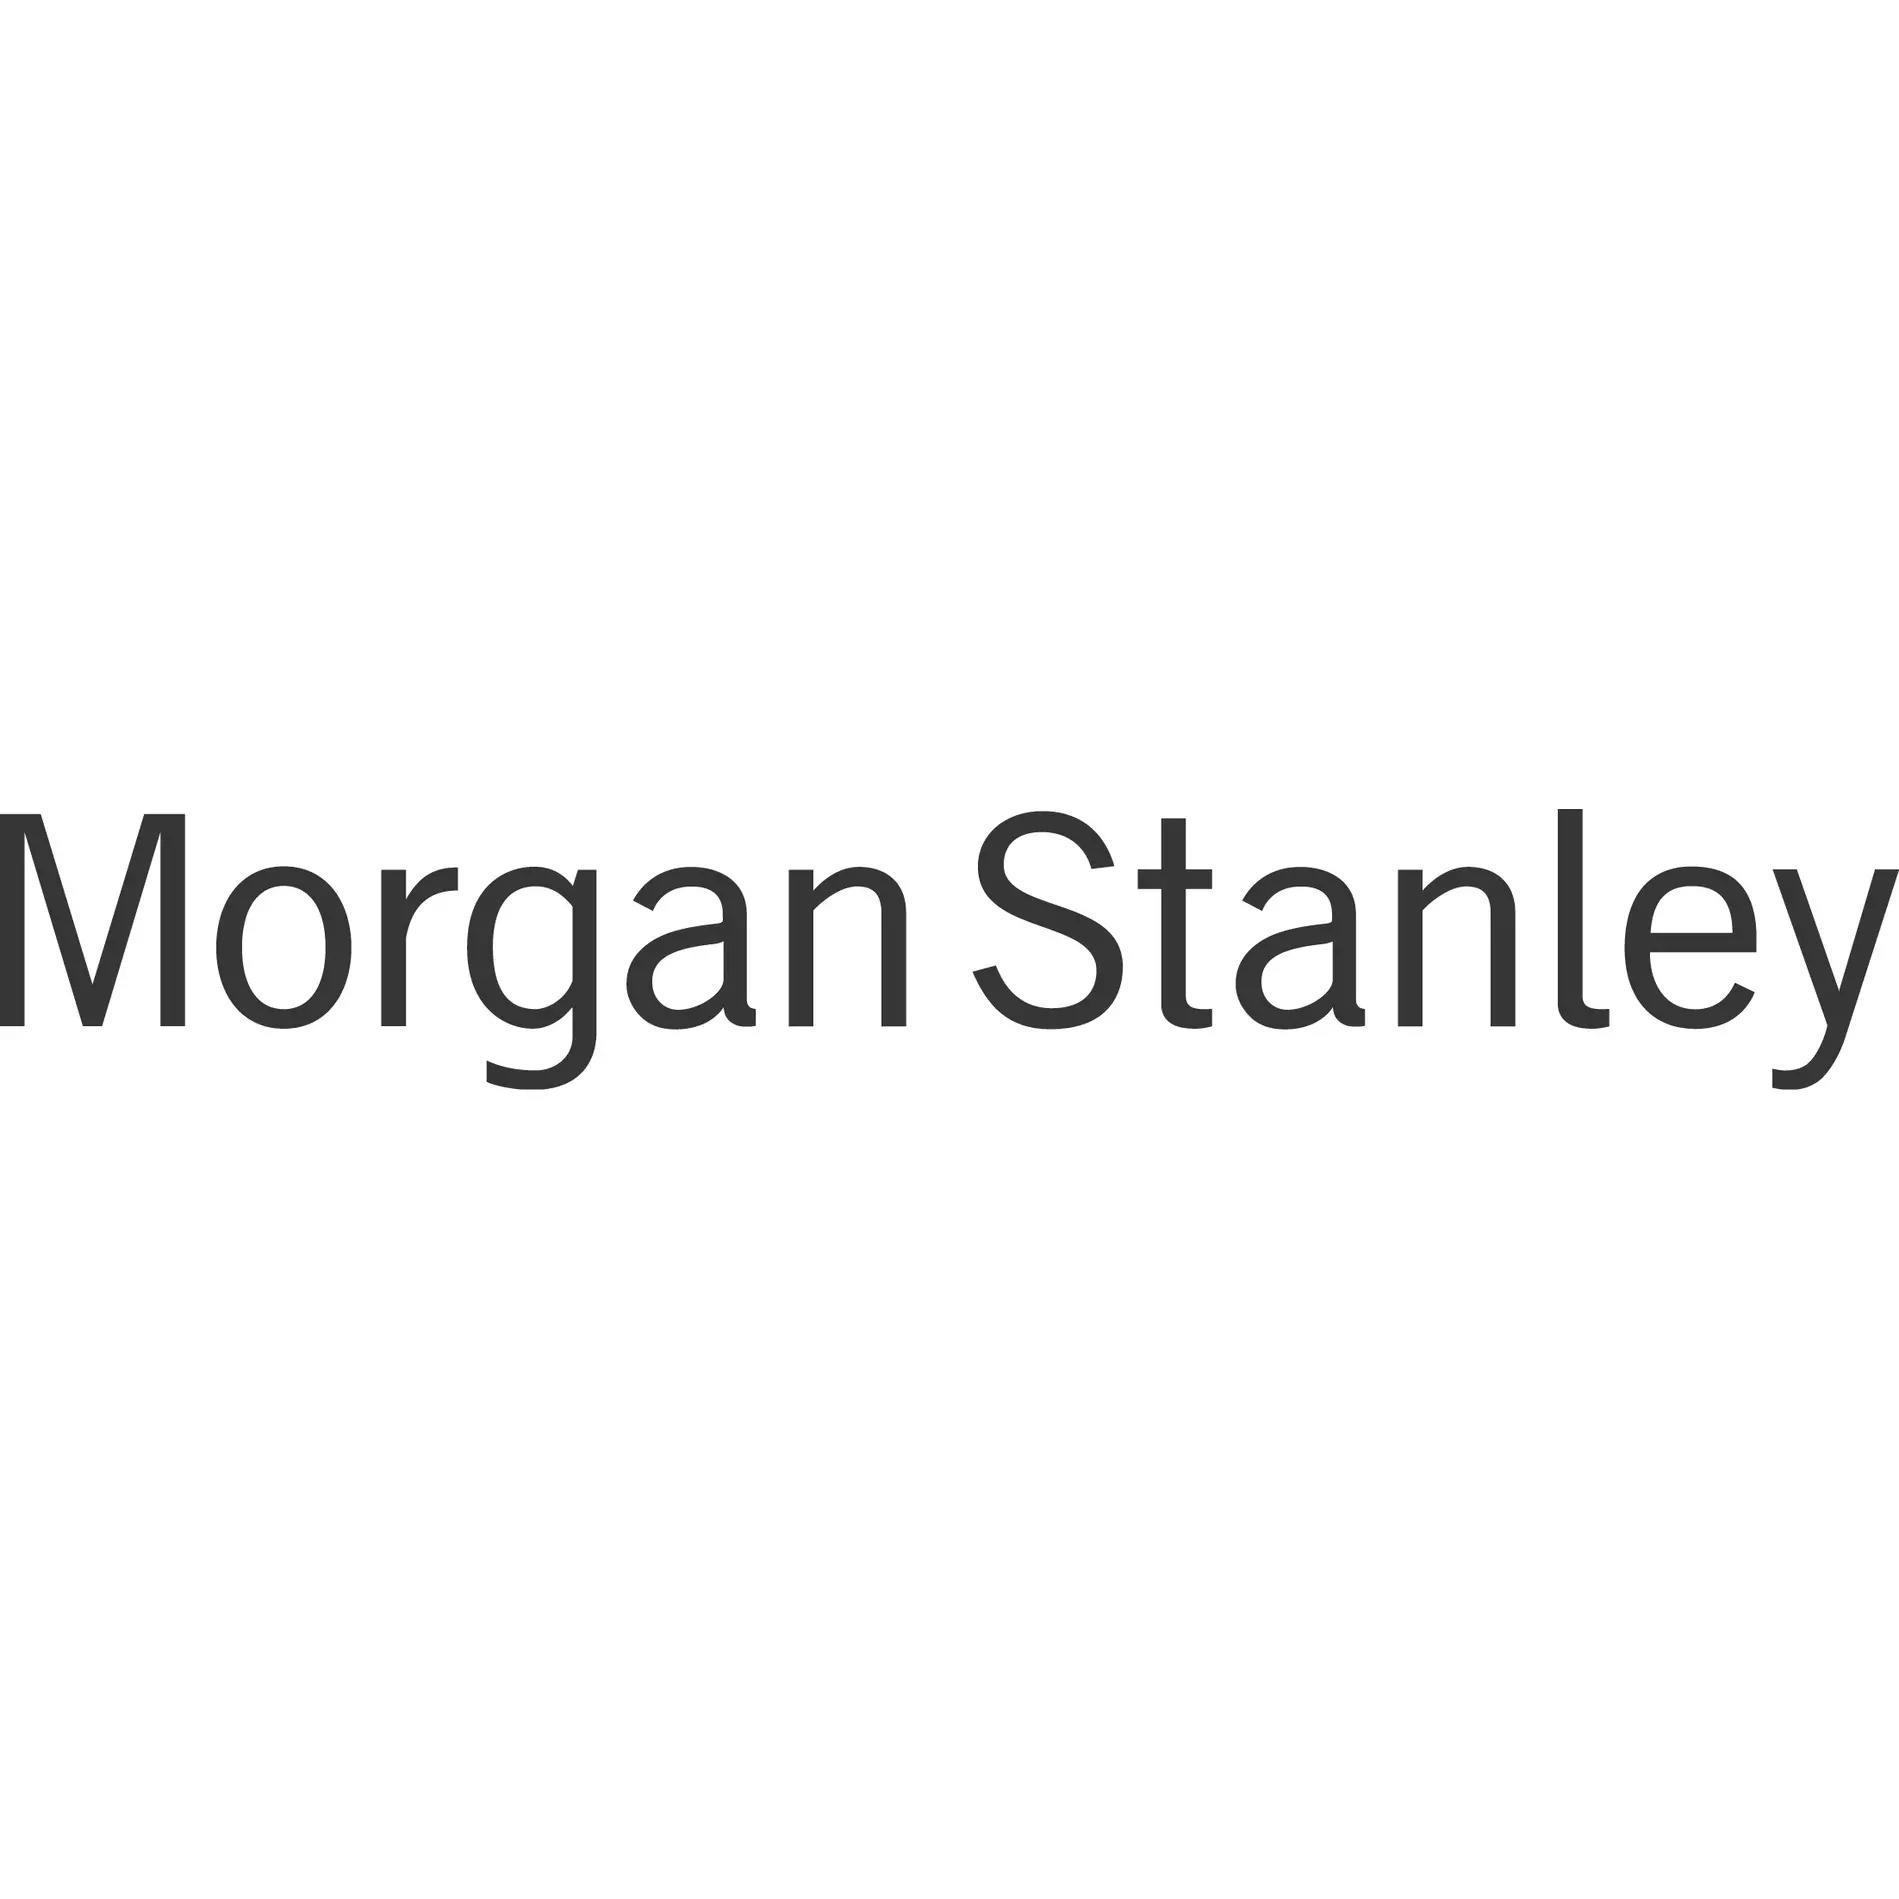 The Cornett Bendele Group - Morgan Stanley